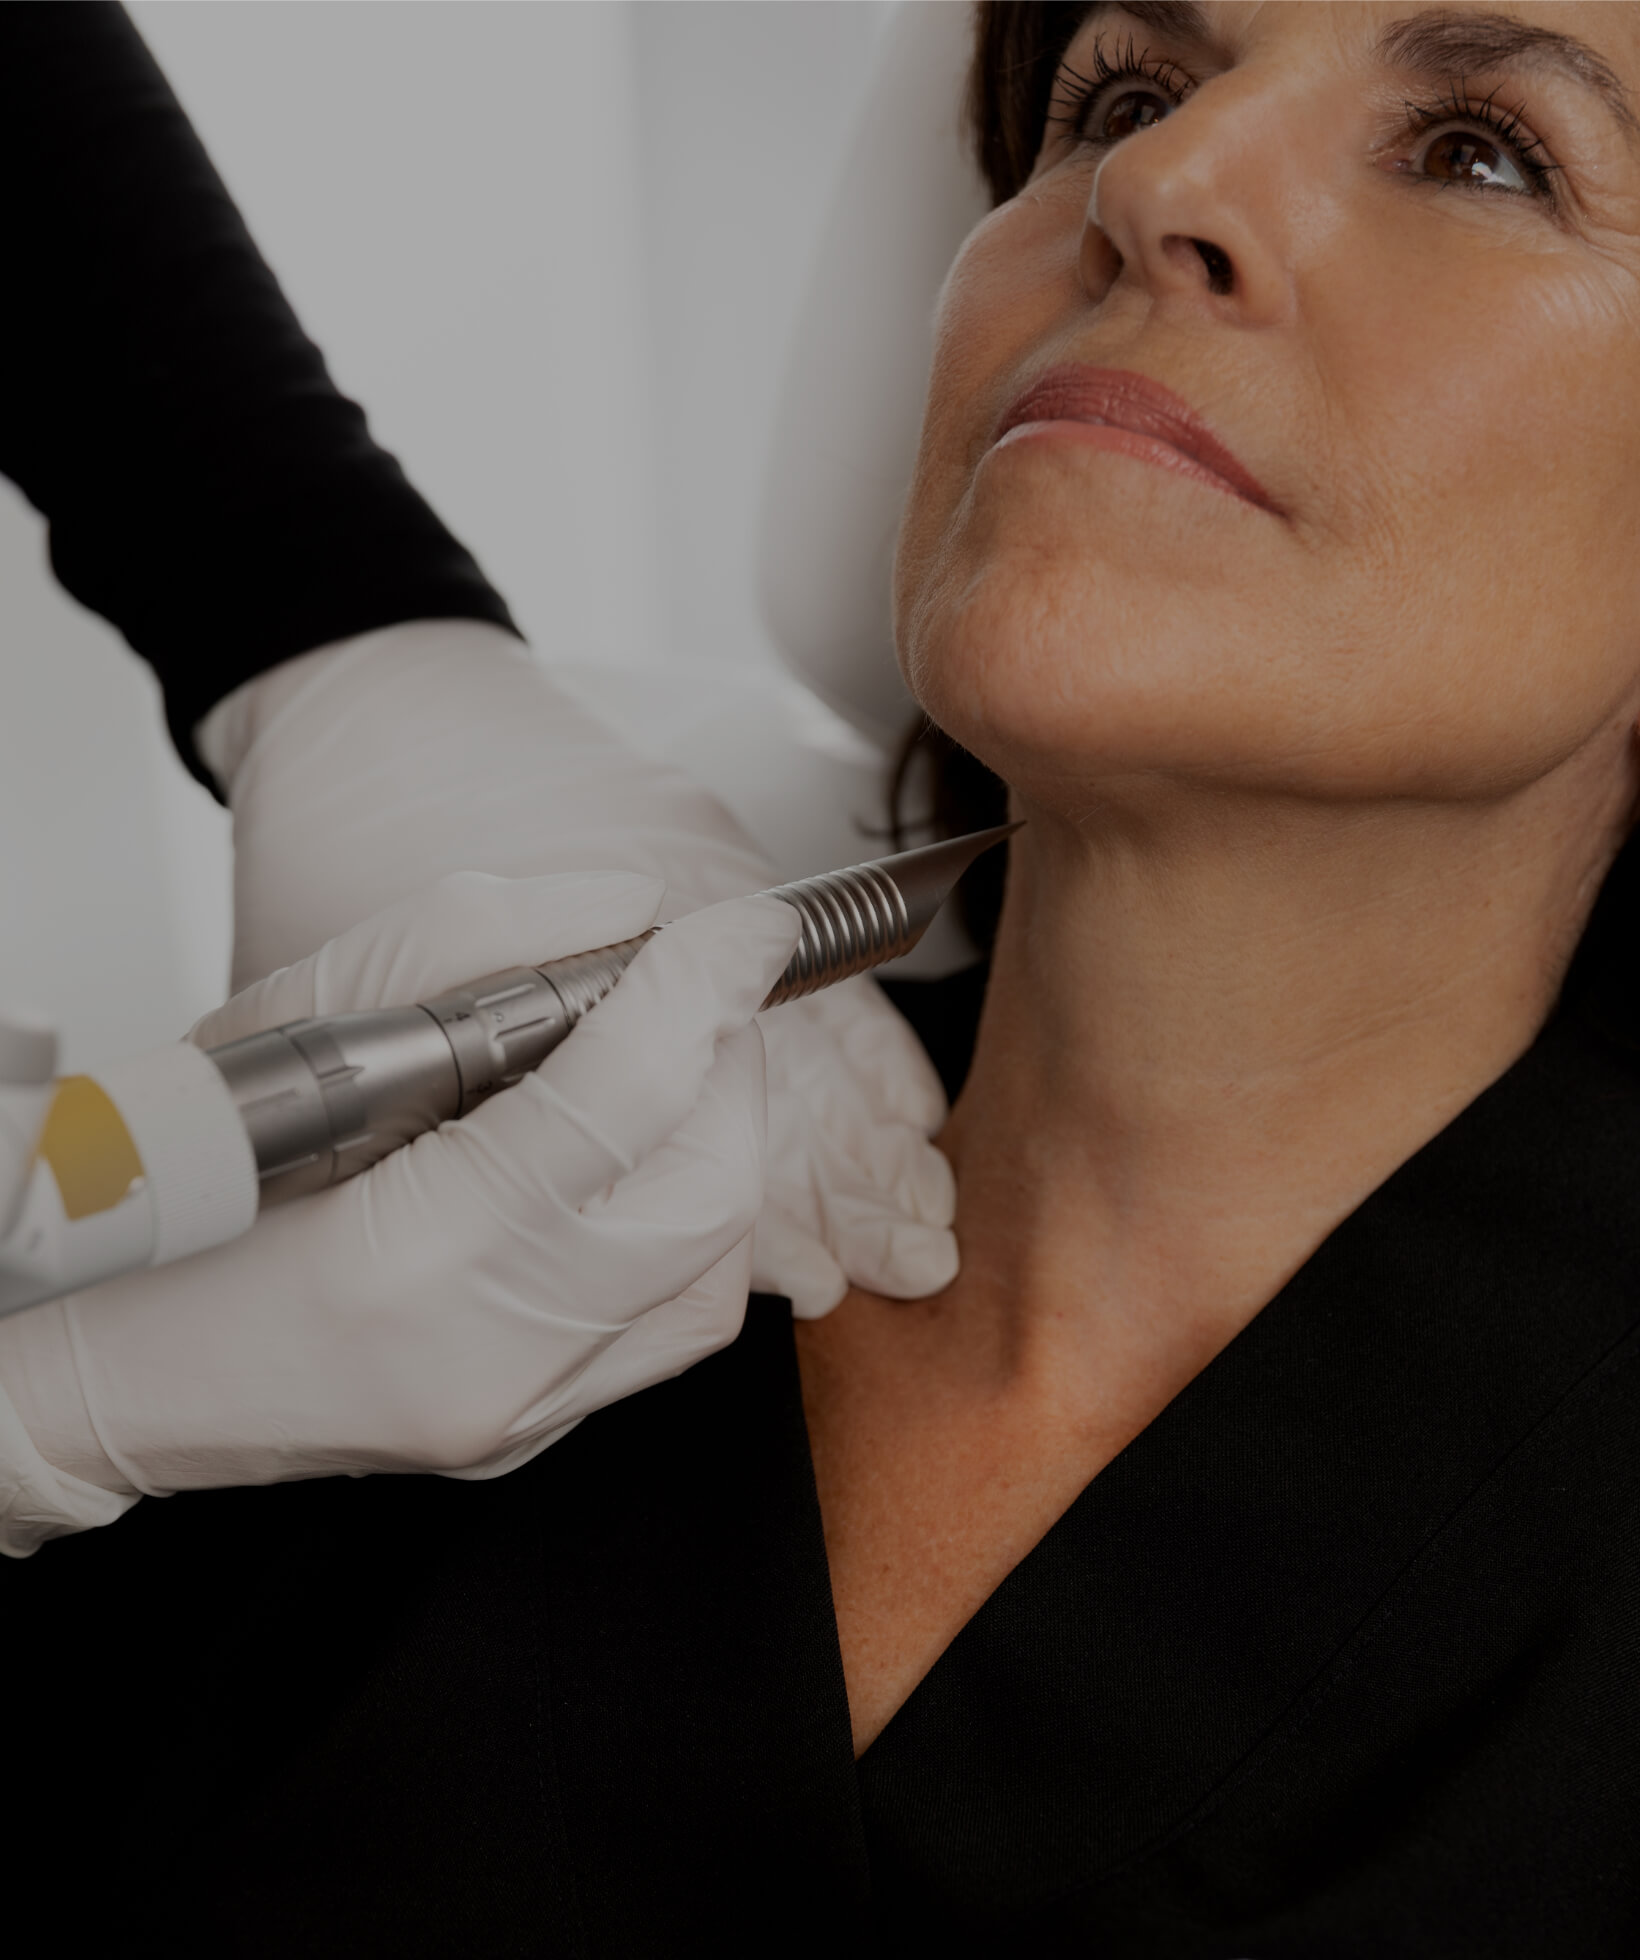 A medico-aesthetic technician from Clinique Chloé treating a patient's neck with the TightSculpting laser